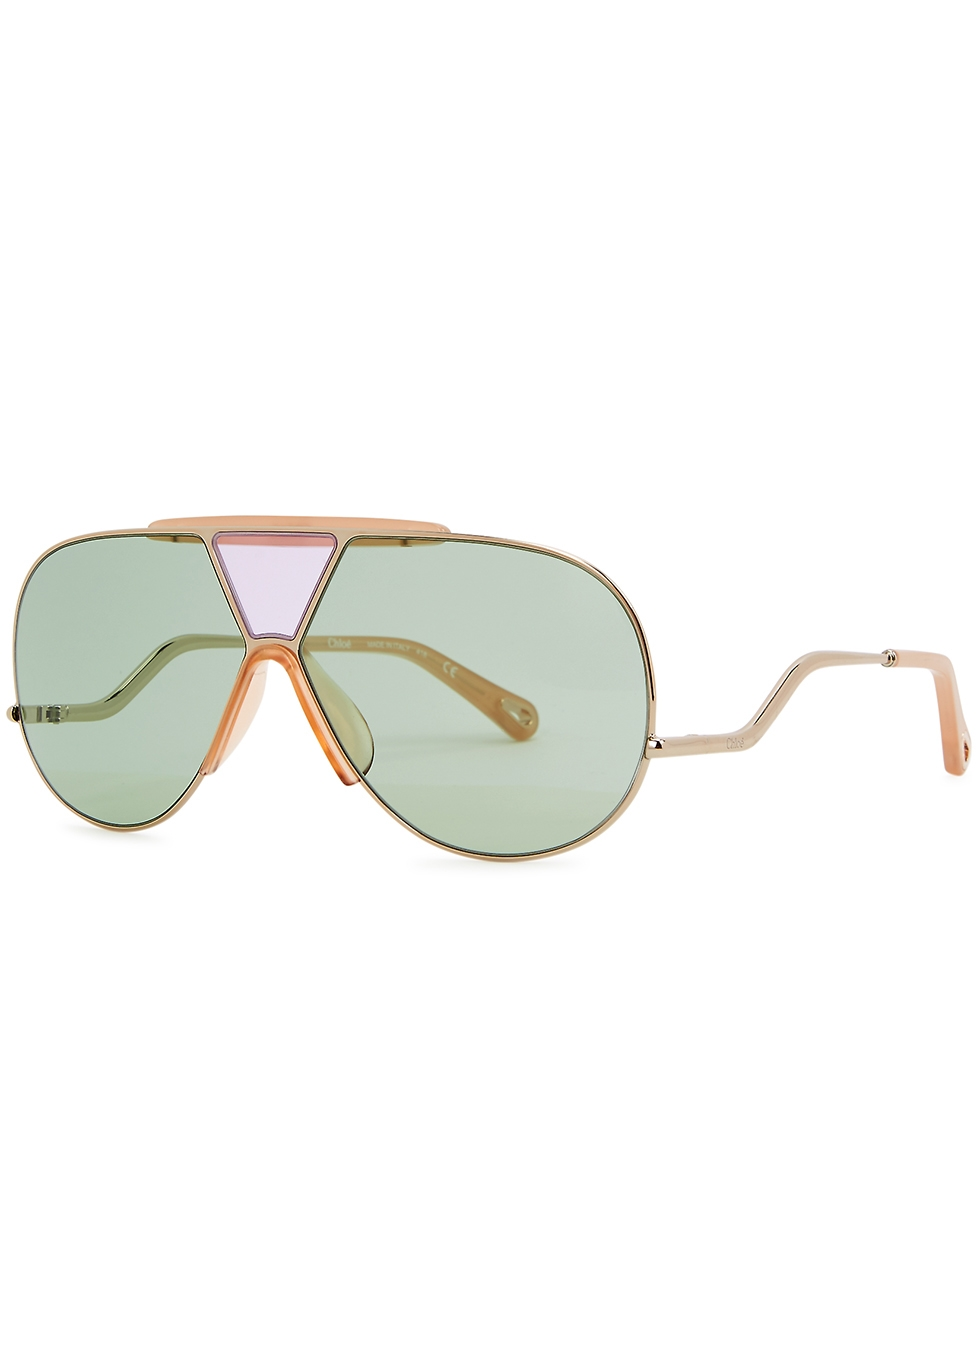 Pale gold-tone aviator-style sunglasses - Chloé